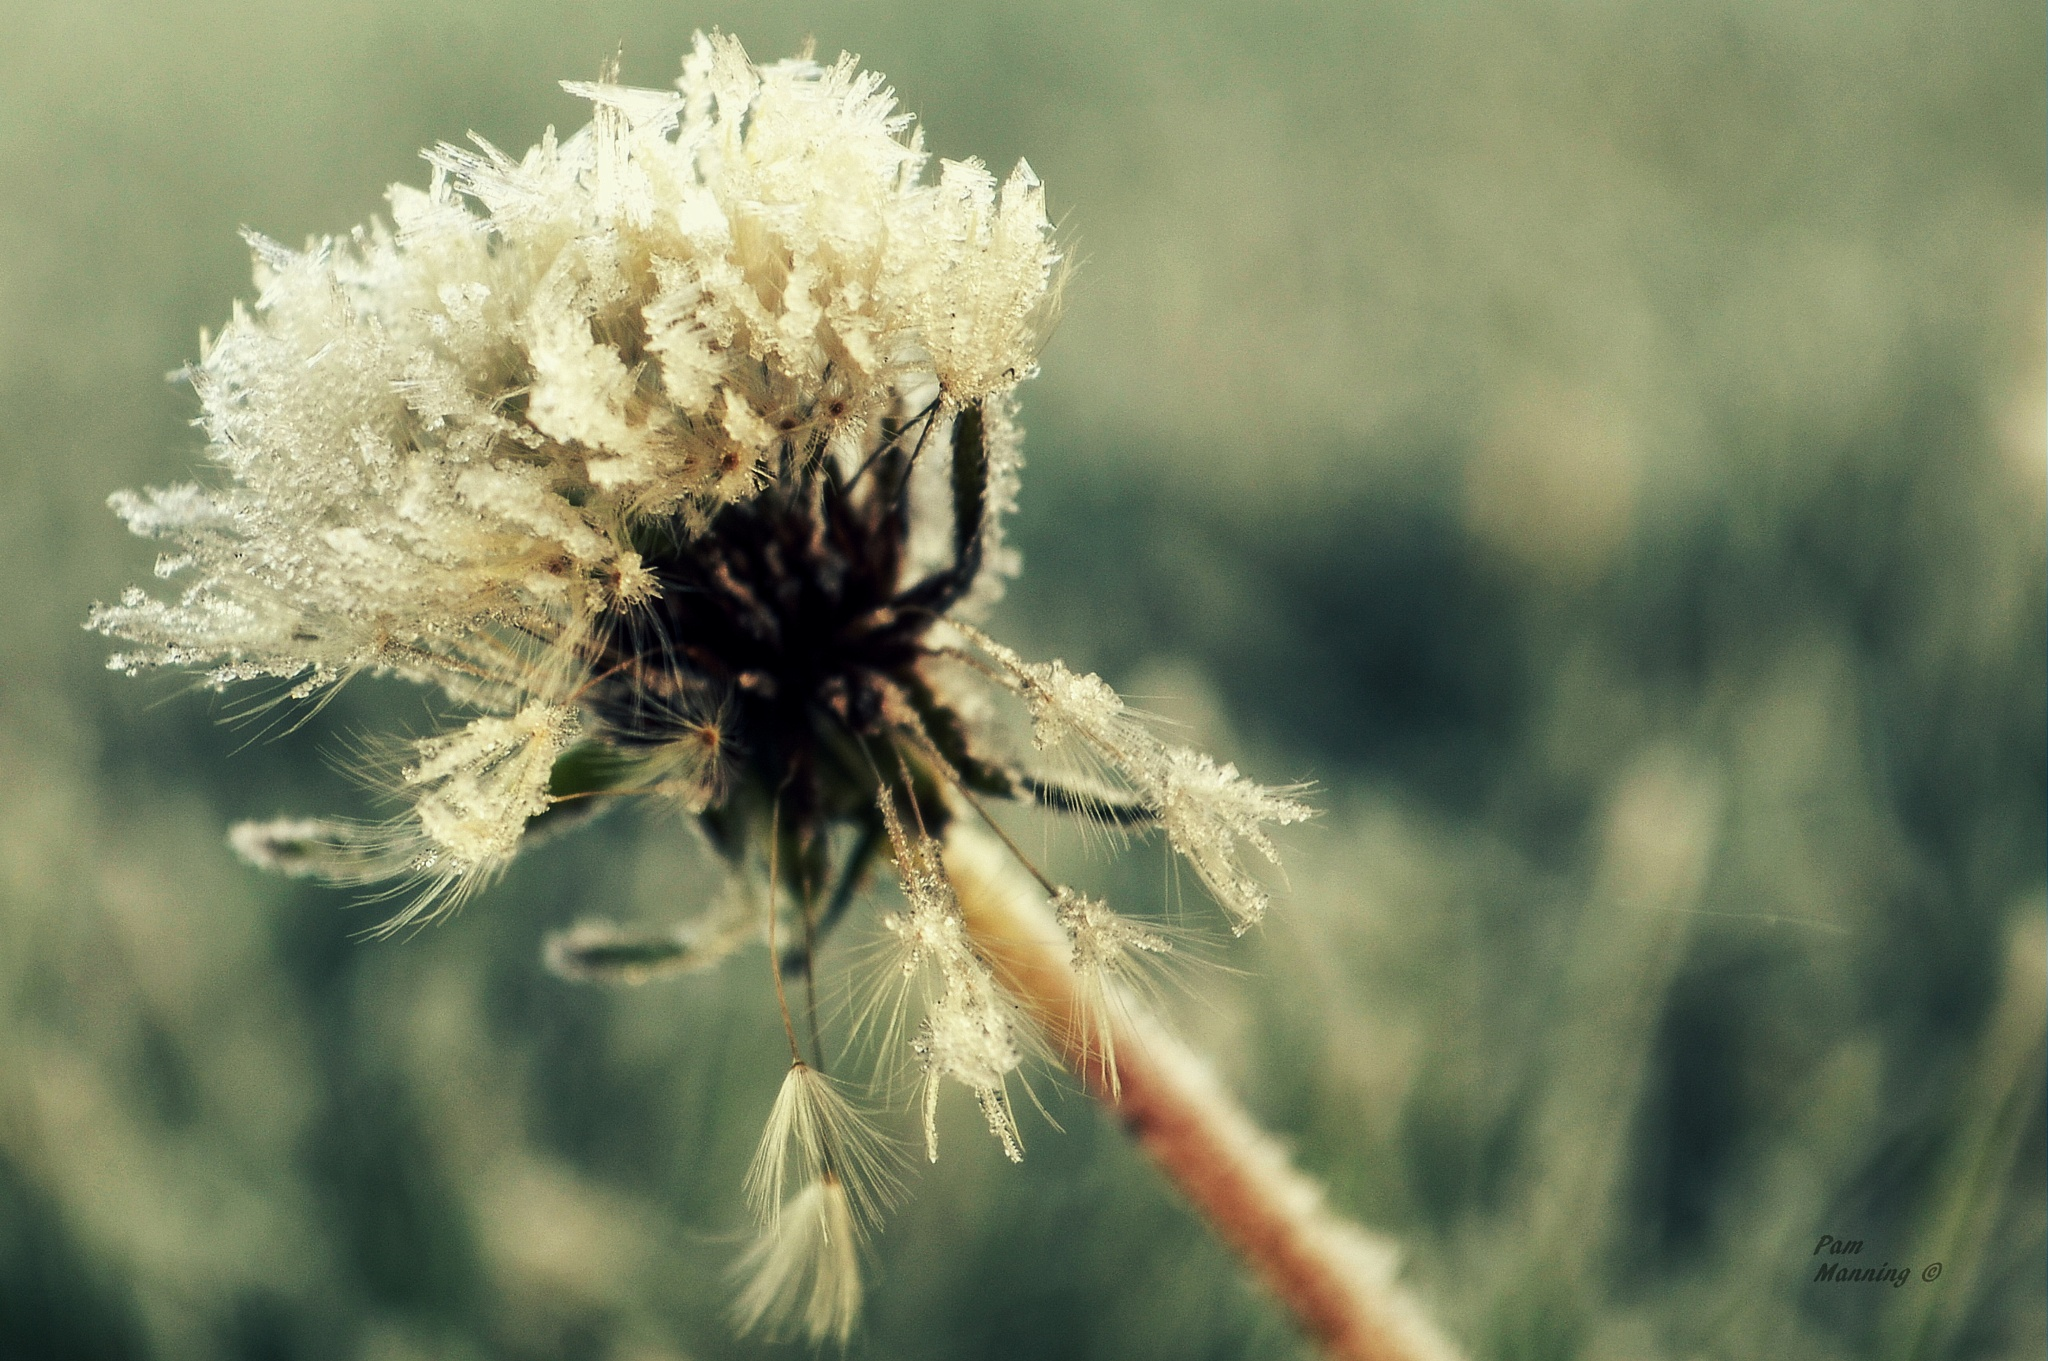 Frosted Dandelion 2 by pam.satterfieldmanning